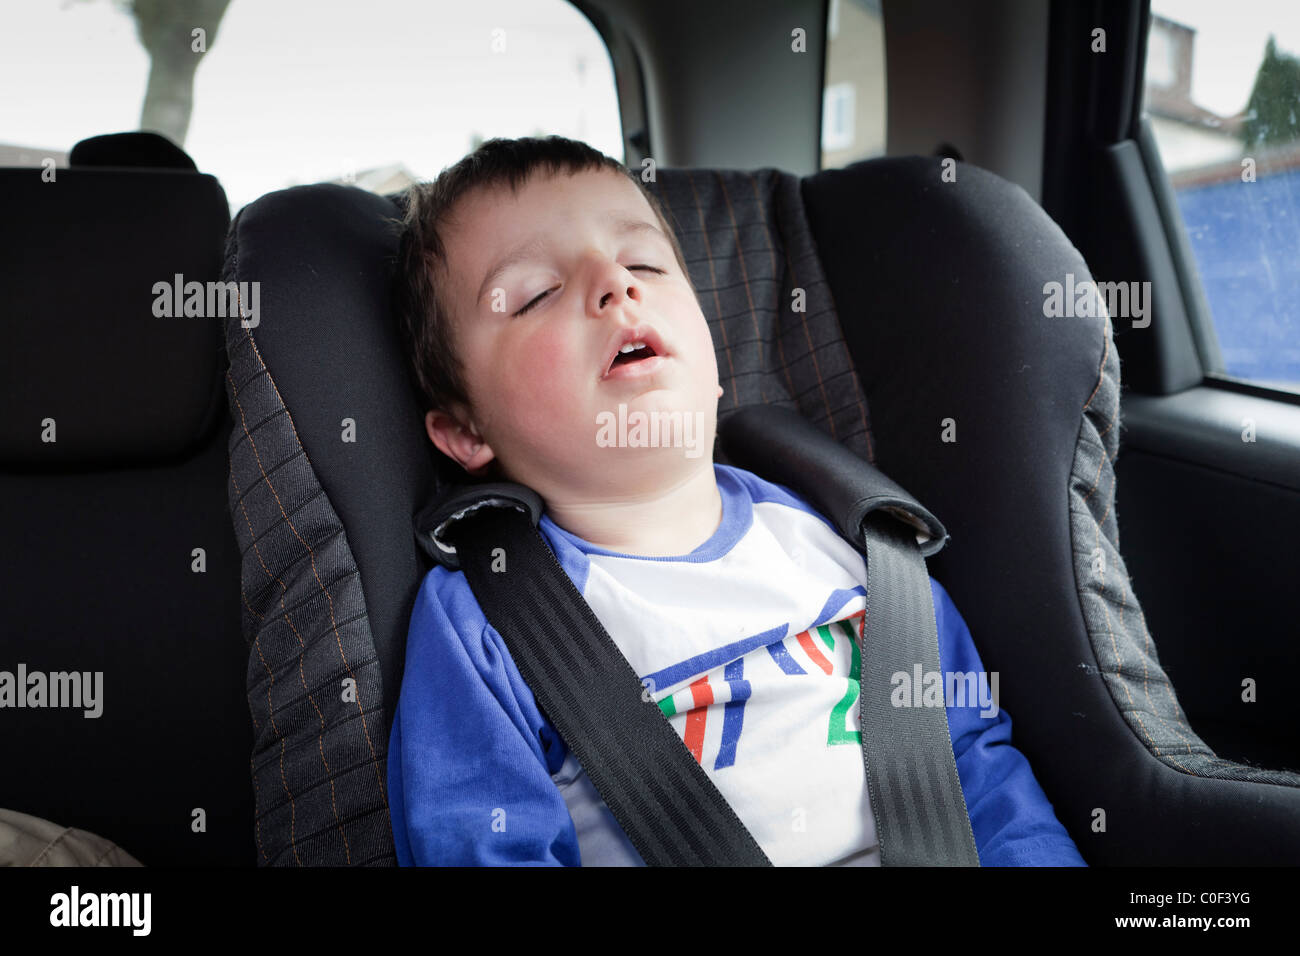 young child alone in the back seat of a car - Stock Image